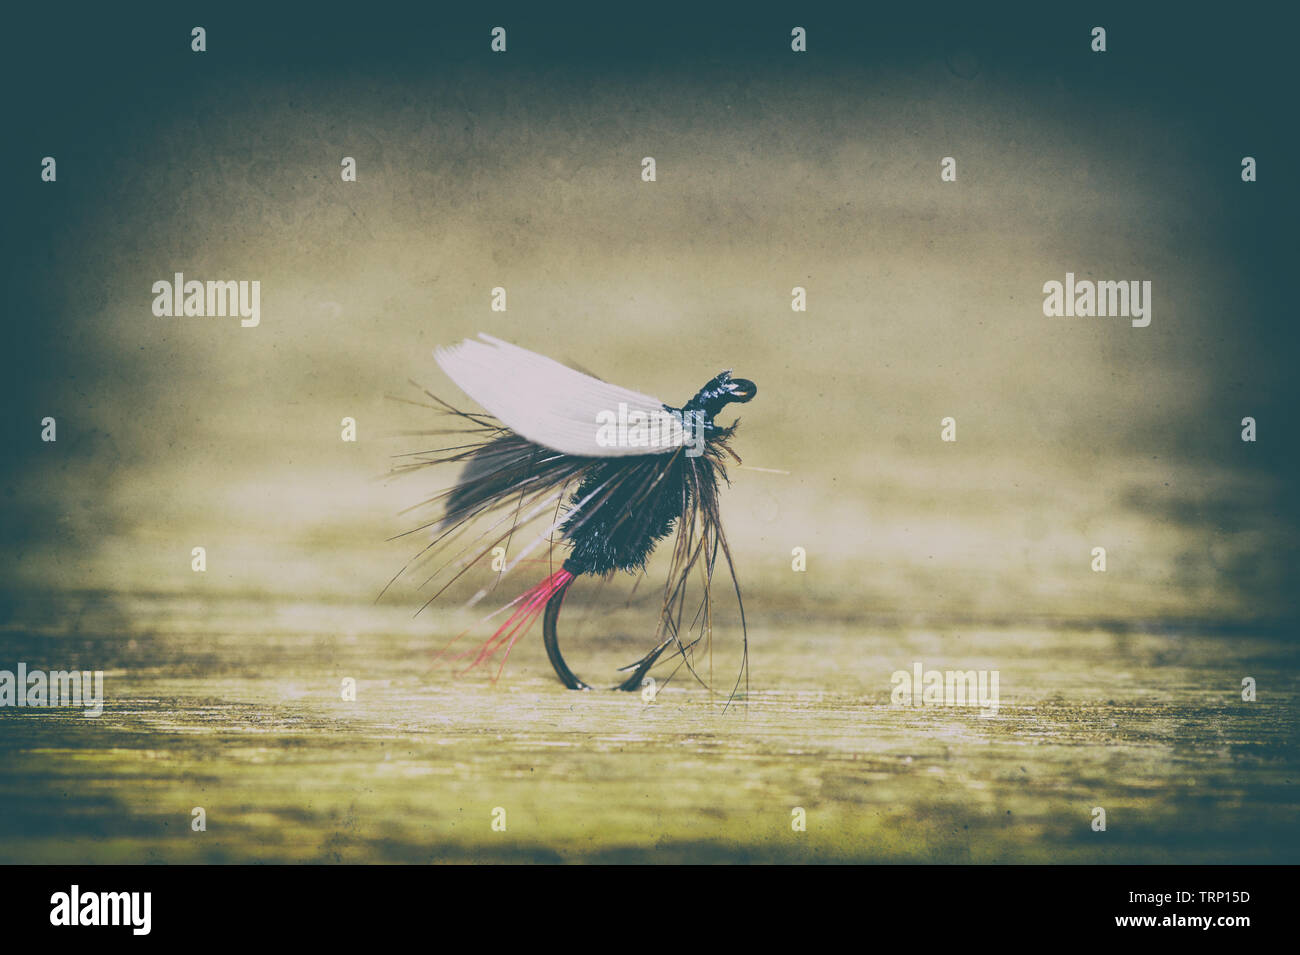 Fly fishing lure close-up in retro style Stock Photo